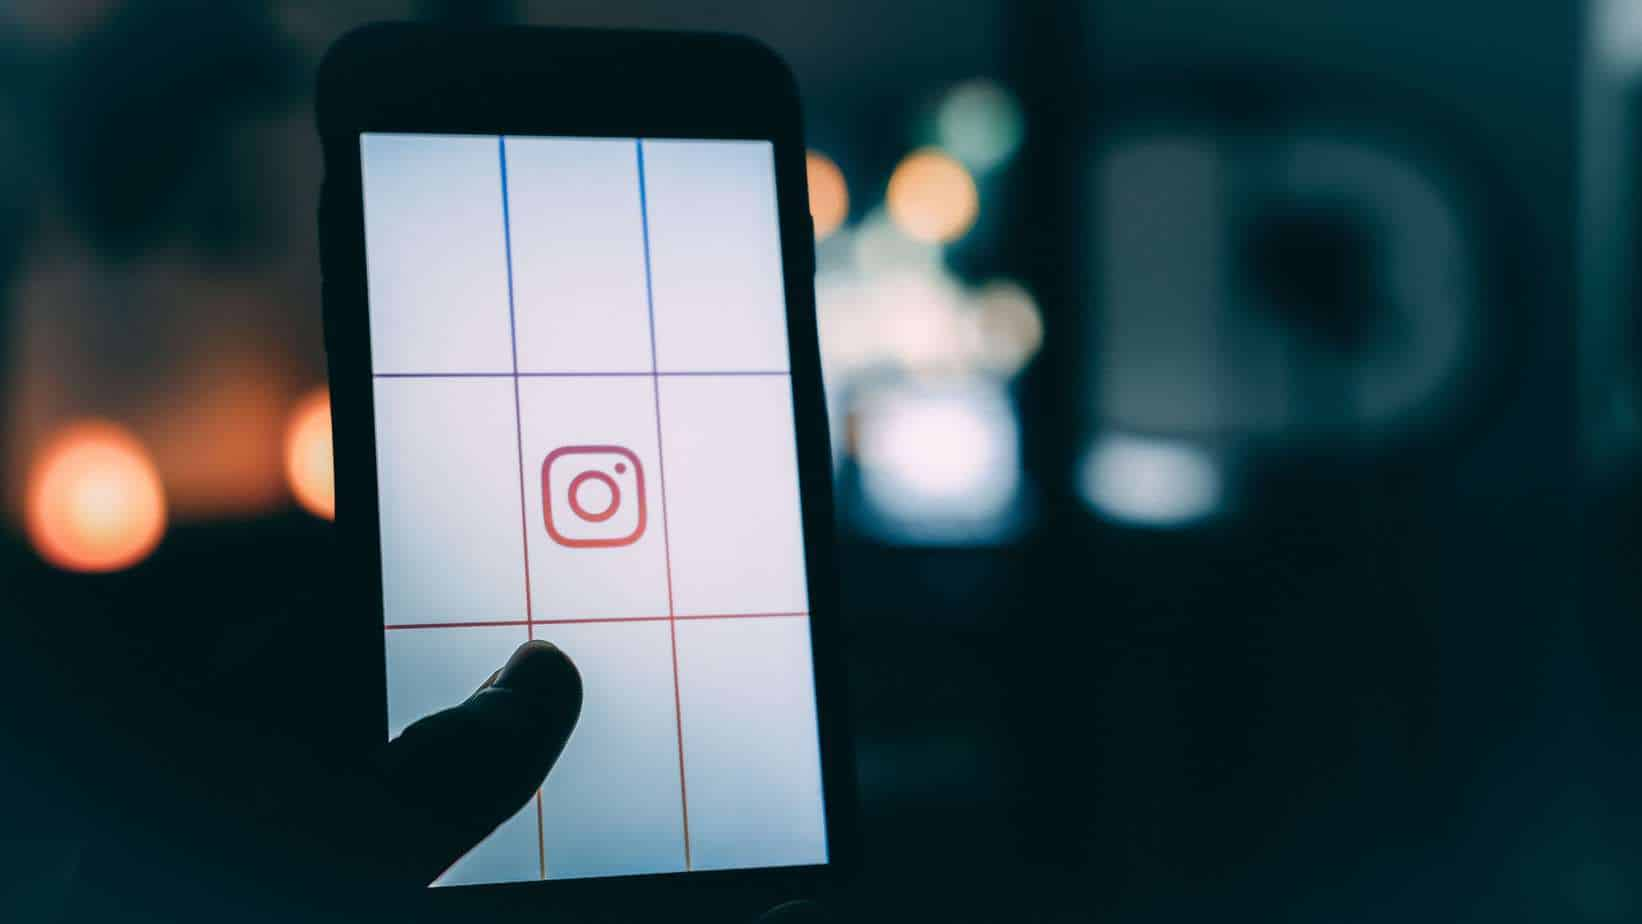 Buying Instagram Followers Pros and Cons